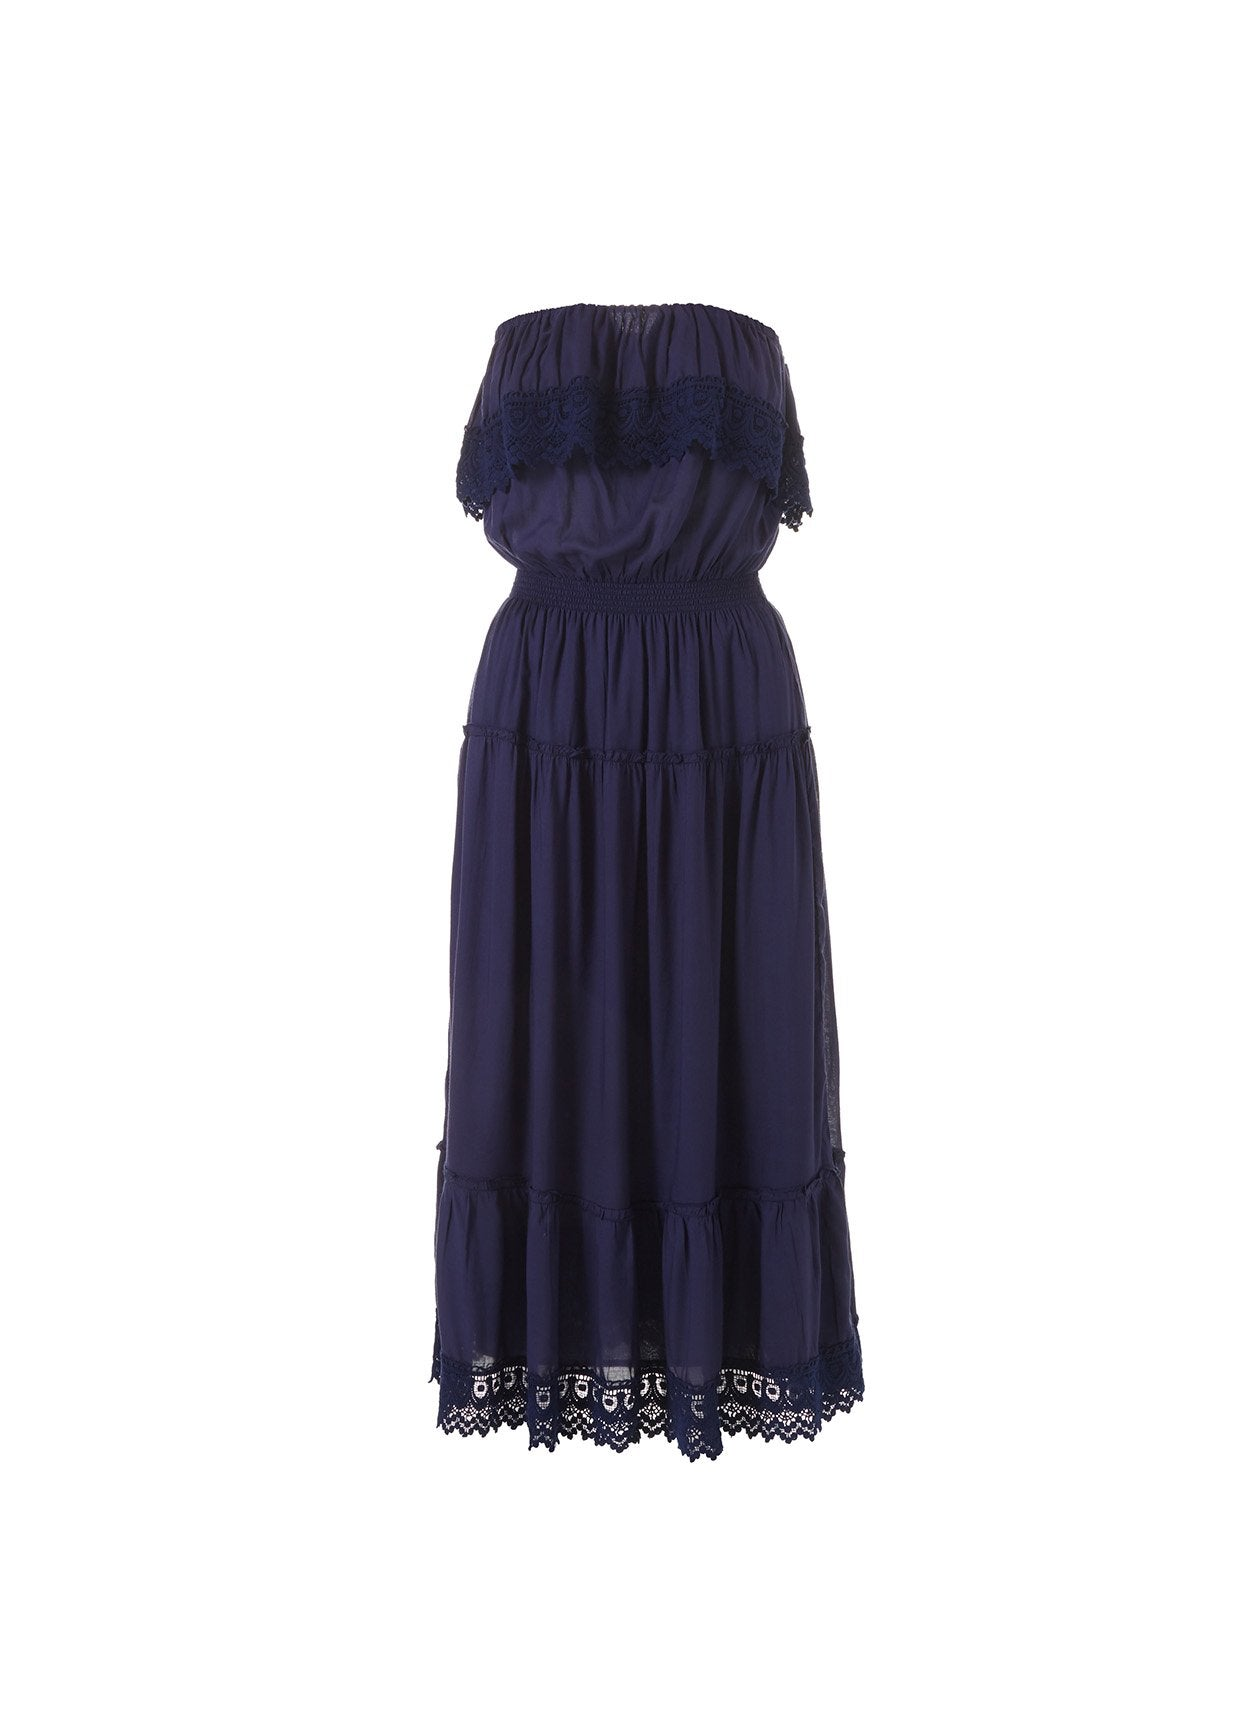 Clara Navy Frill Embroidered Midi Dress 2020